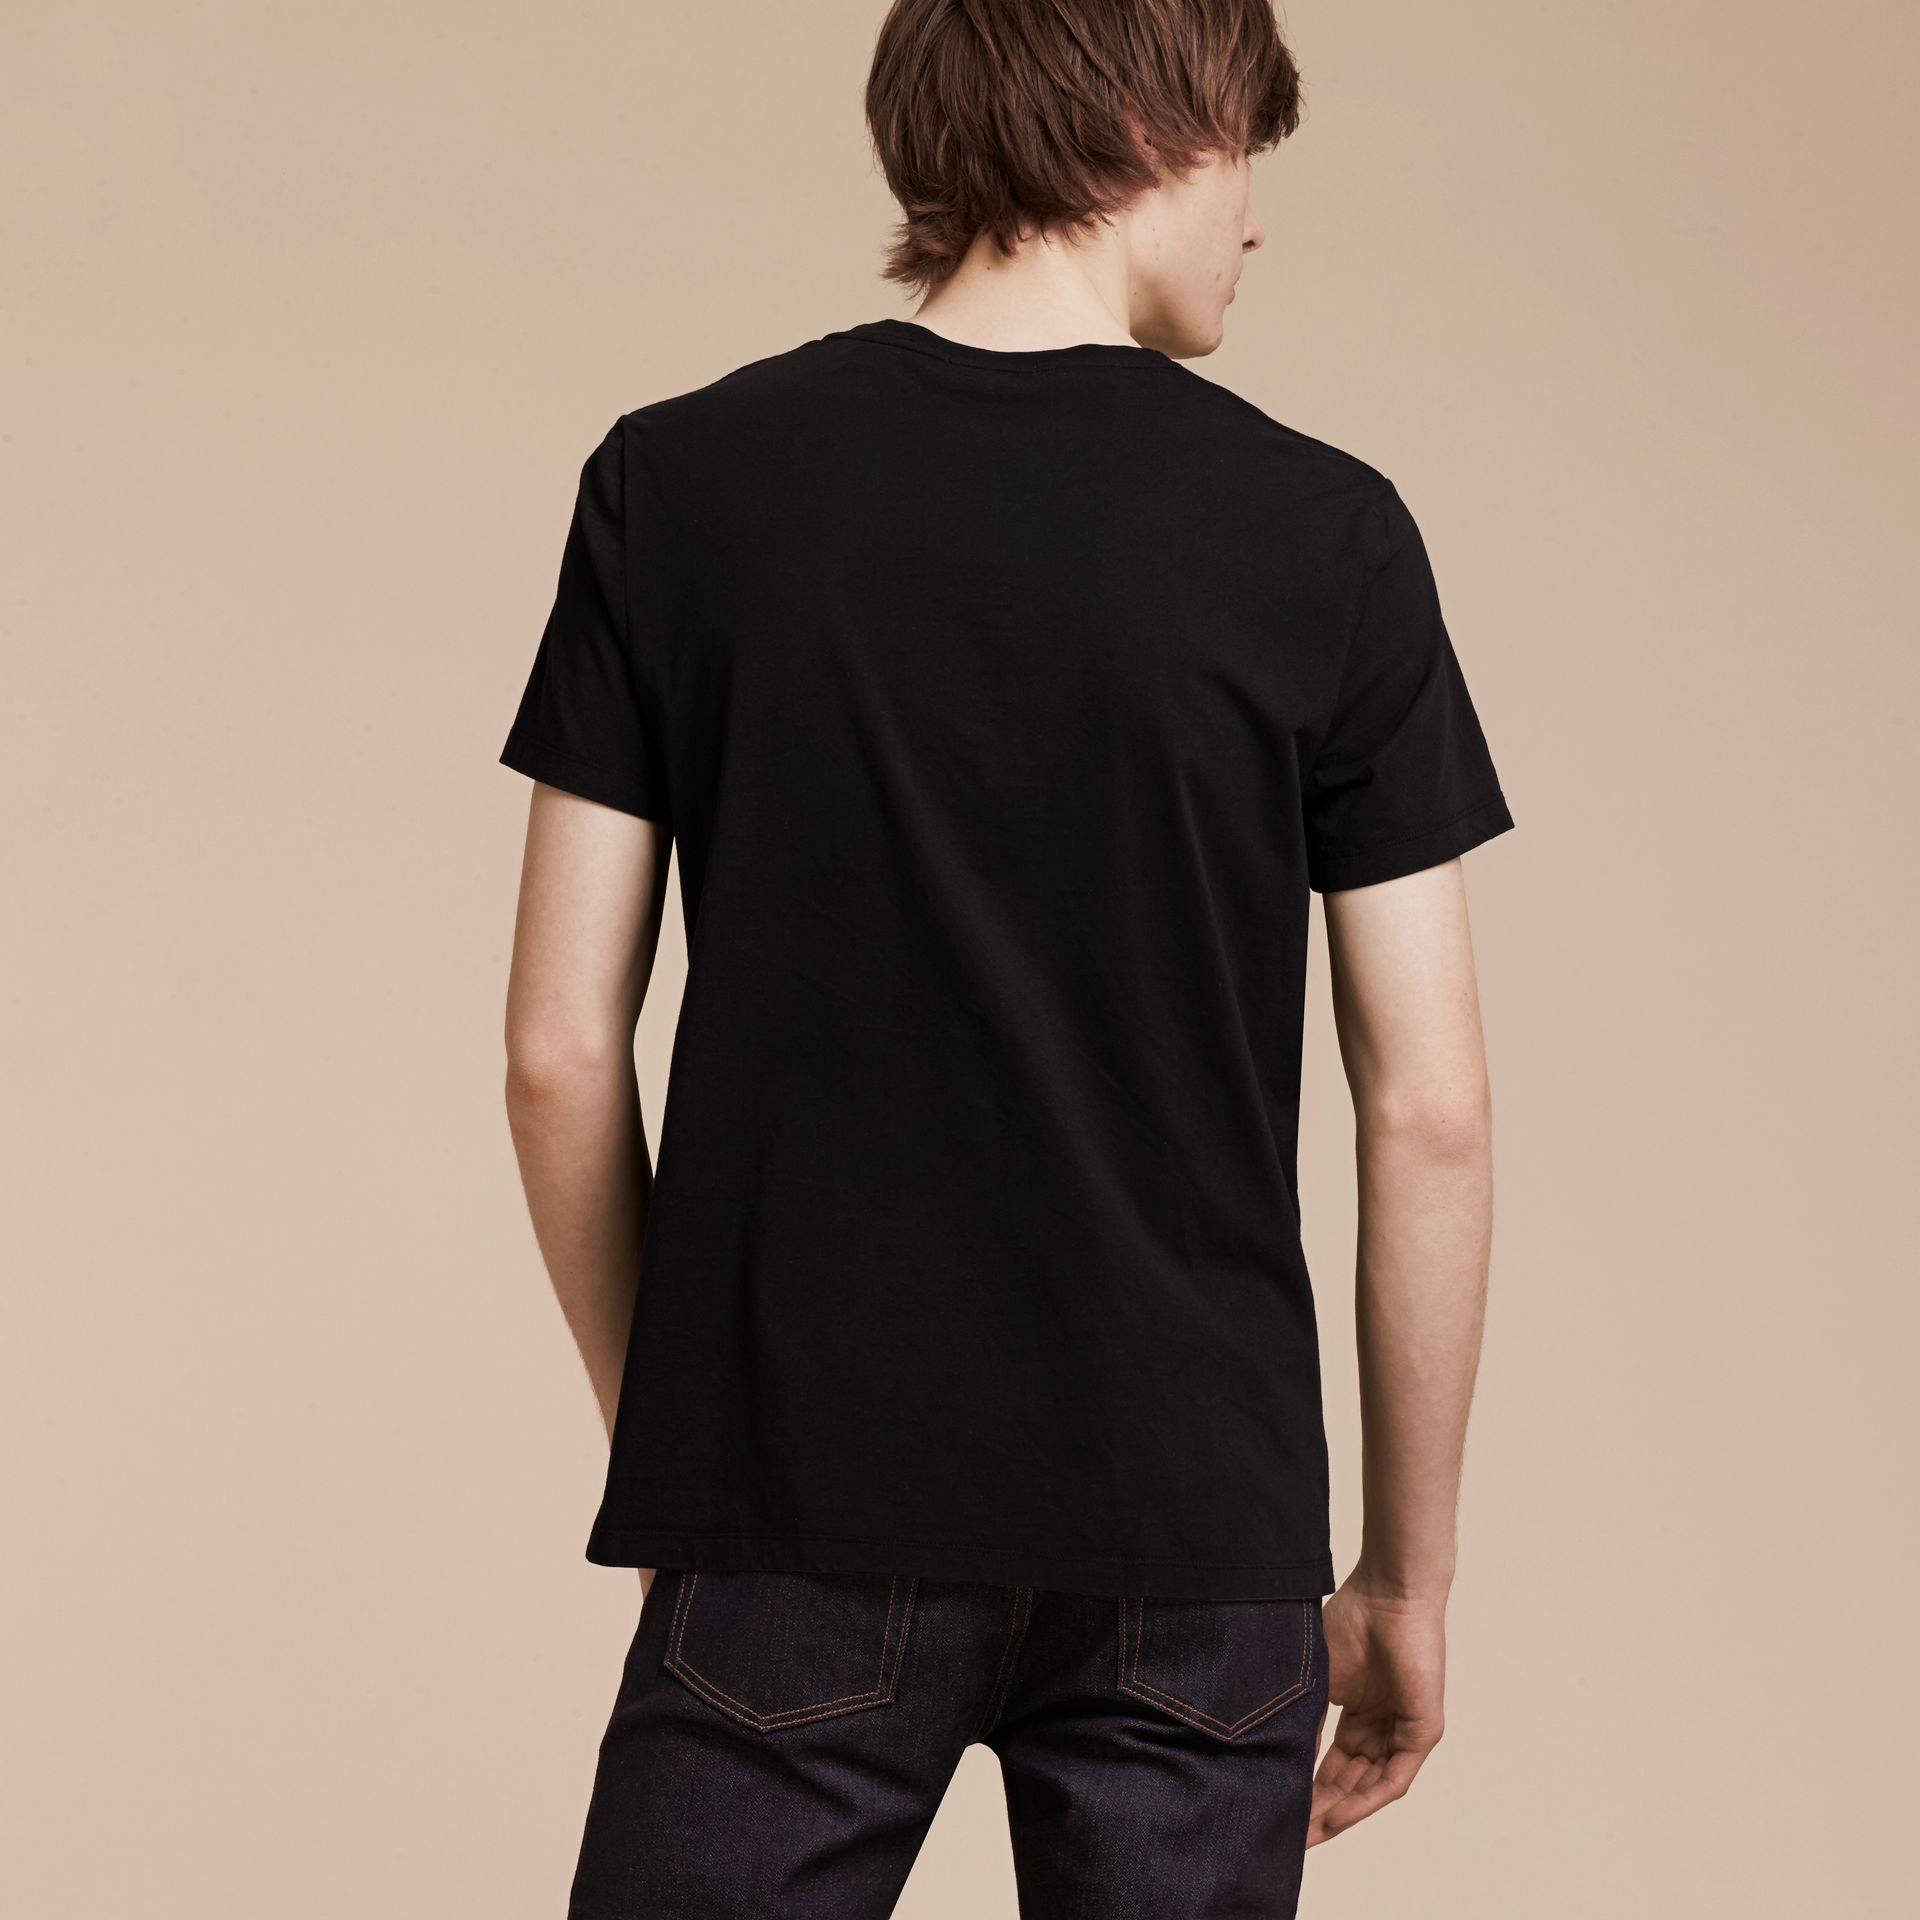 Black Brushstroke Check Print Cotton T-Shirt Black - gallery image 3